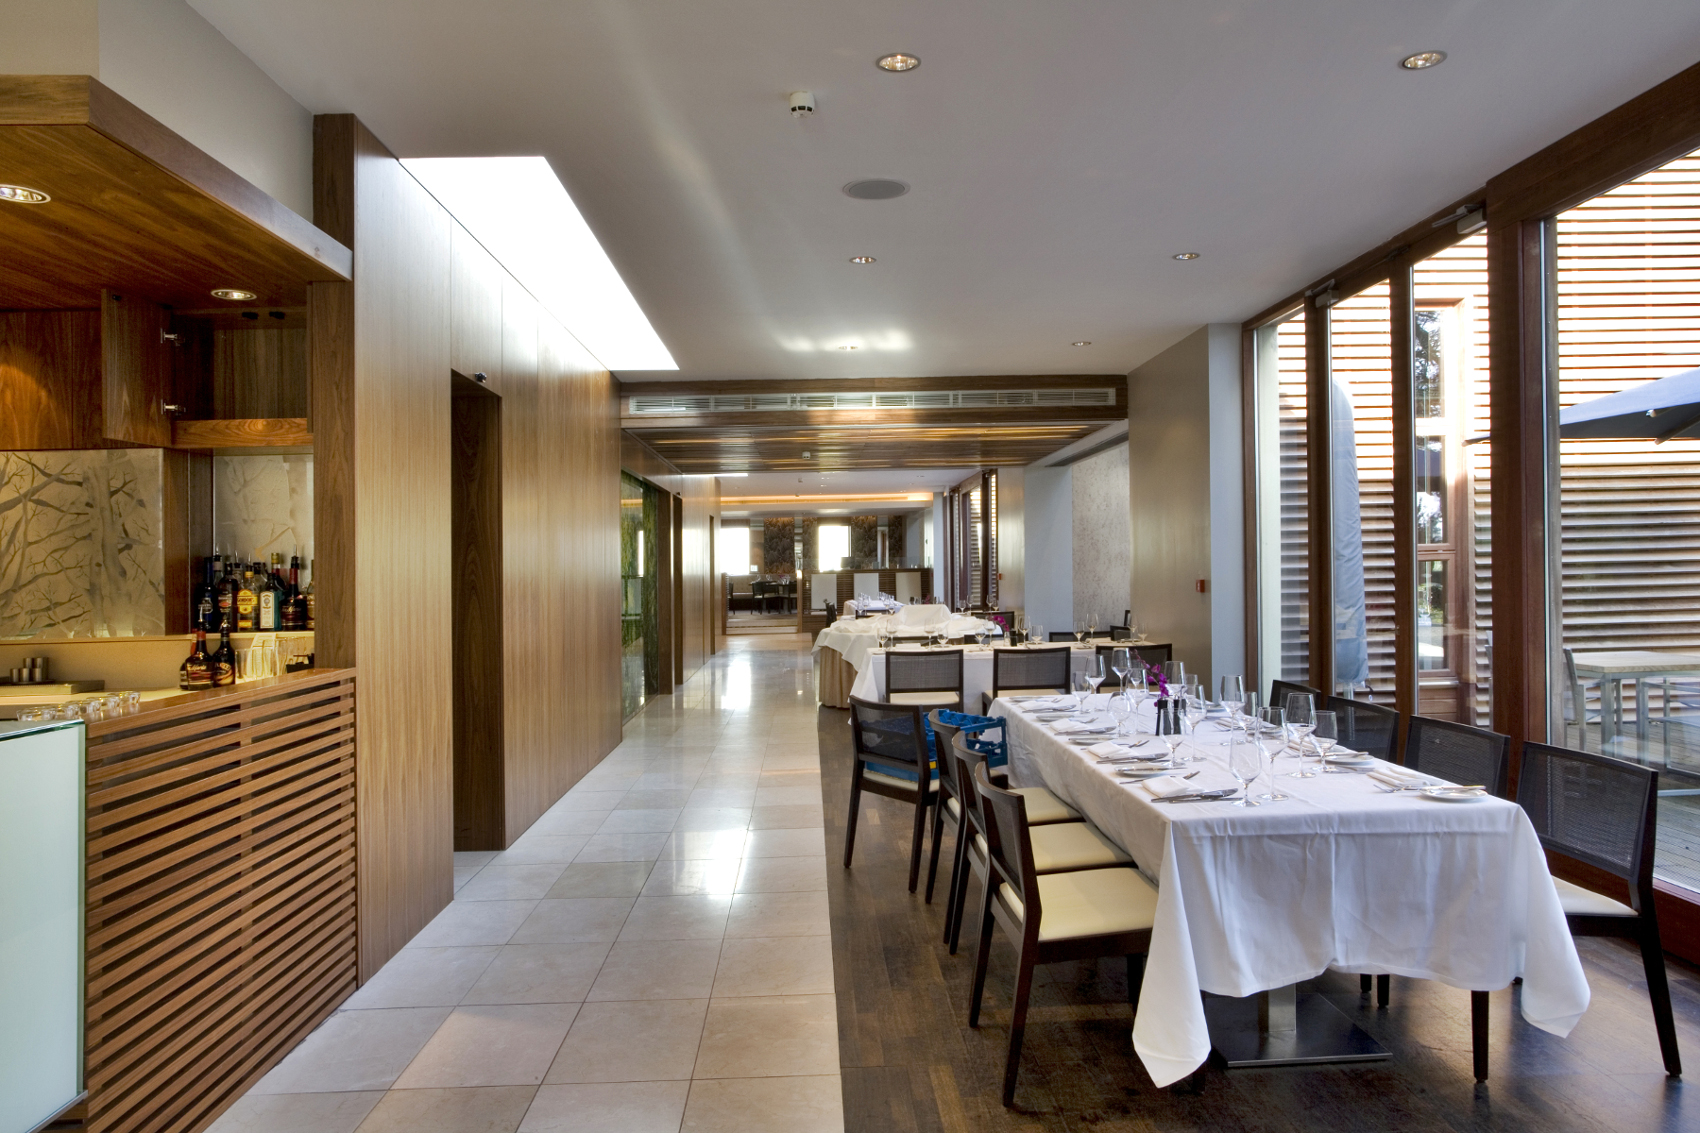 Hotel Fitout-Carton House-Restaurant